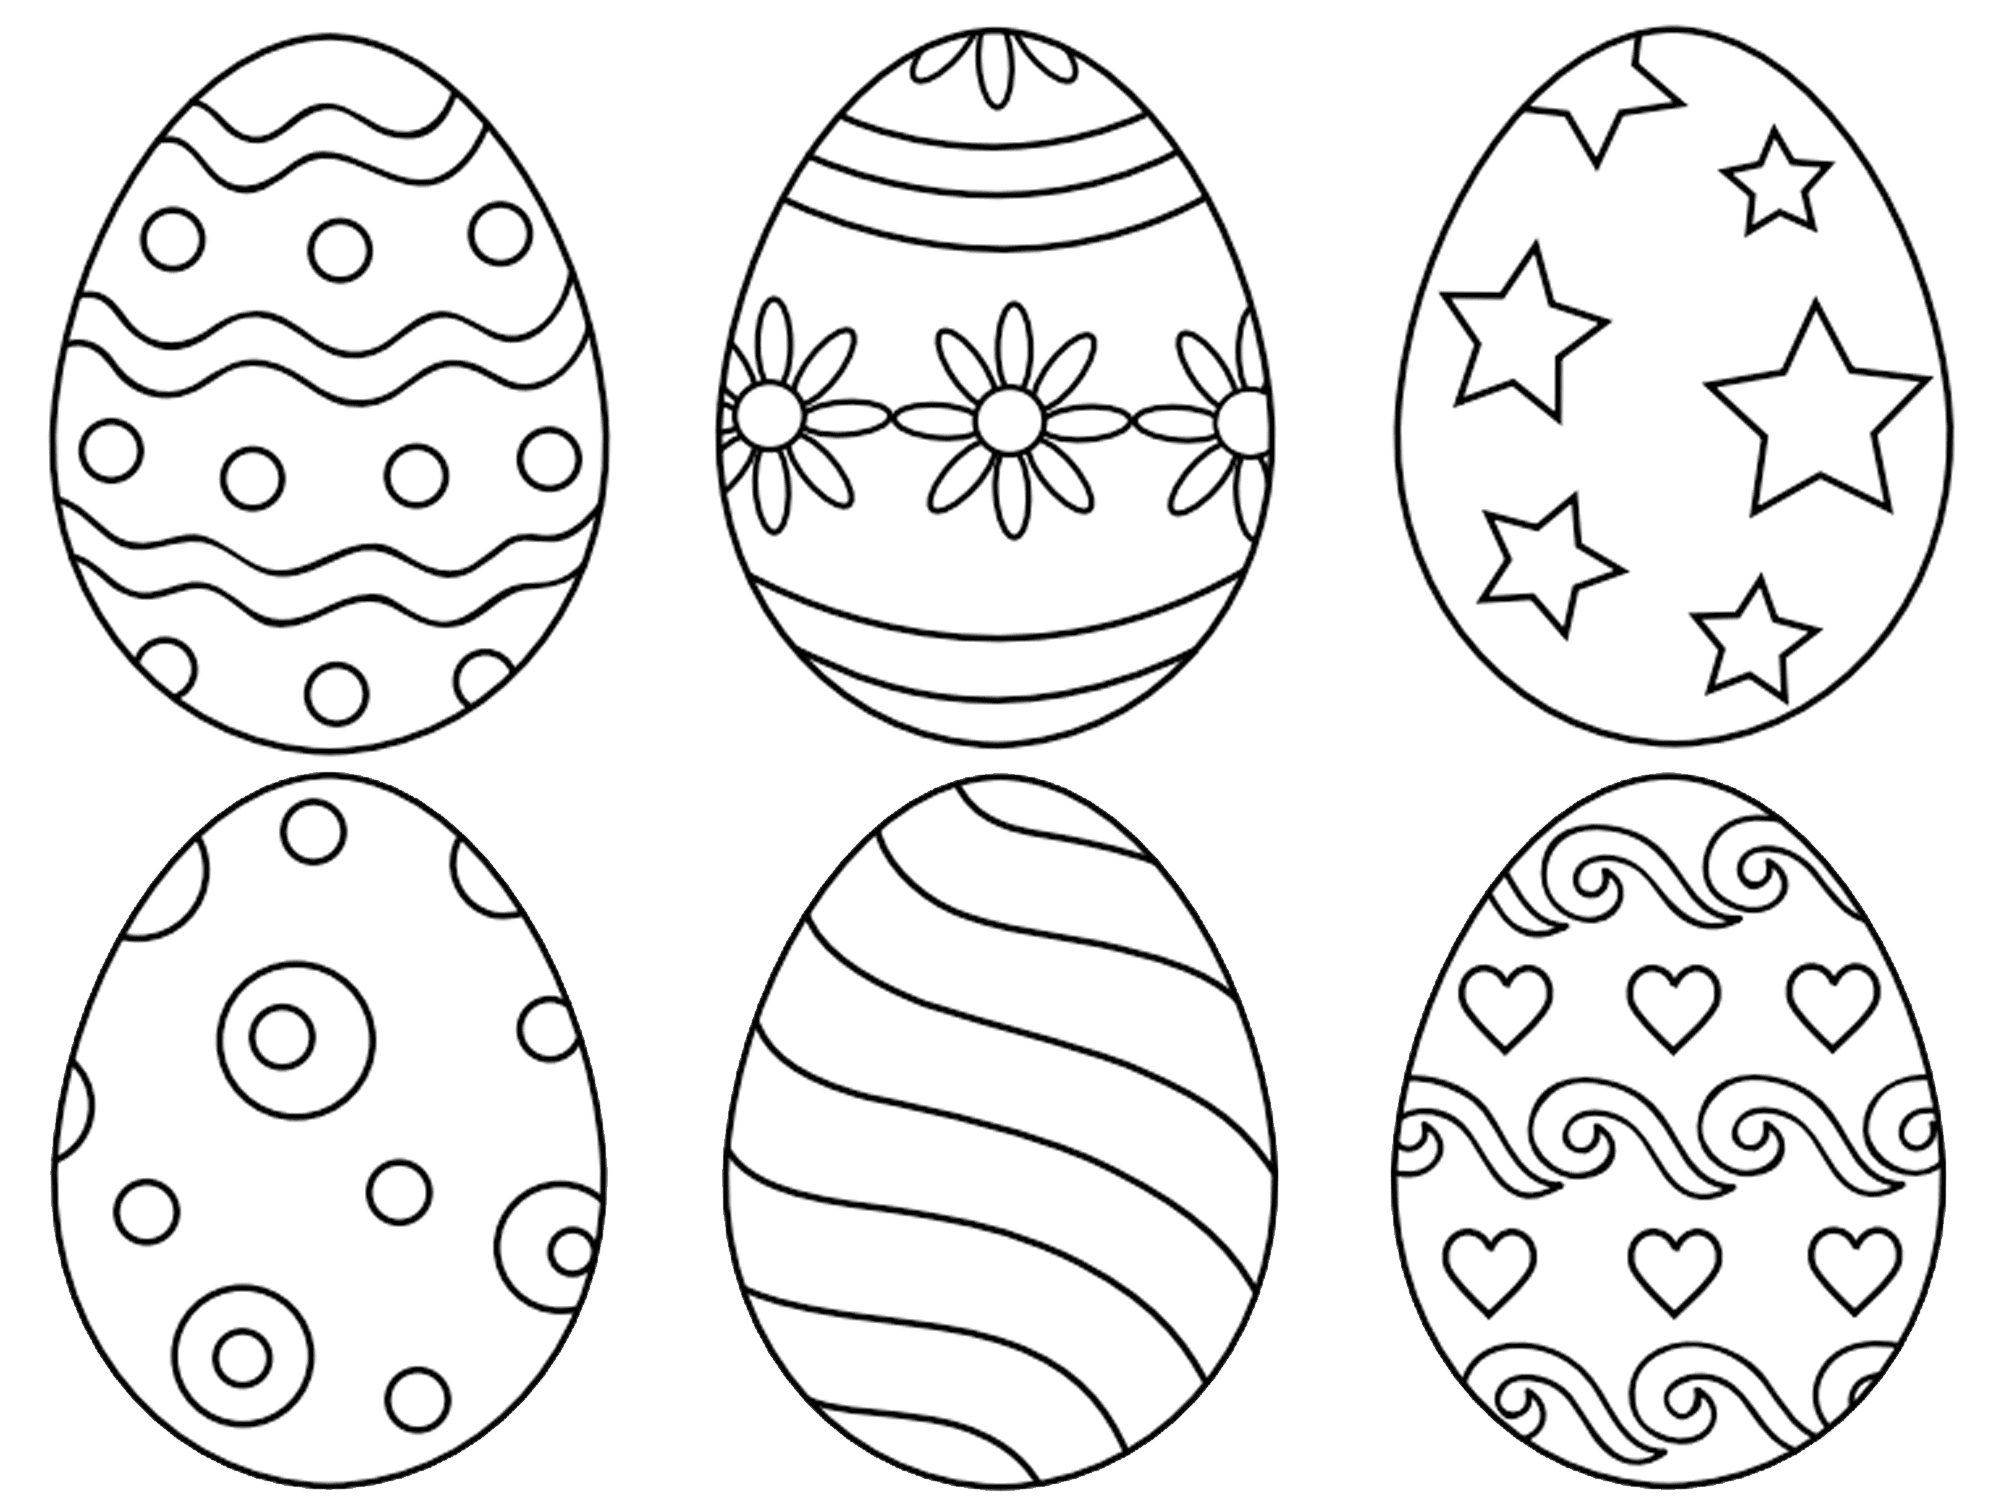 free printable easter egg coloring pages for the kids - Easter Eggs Coloring Pages